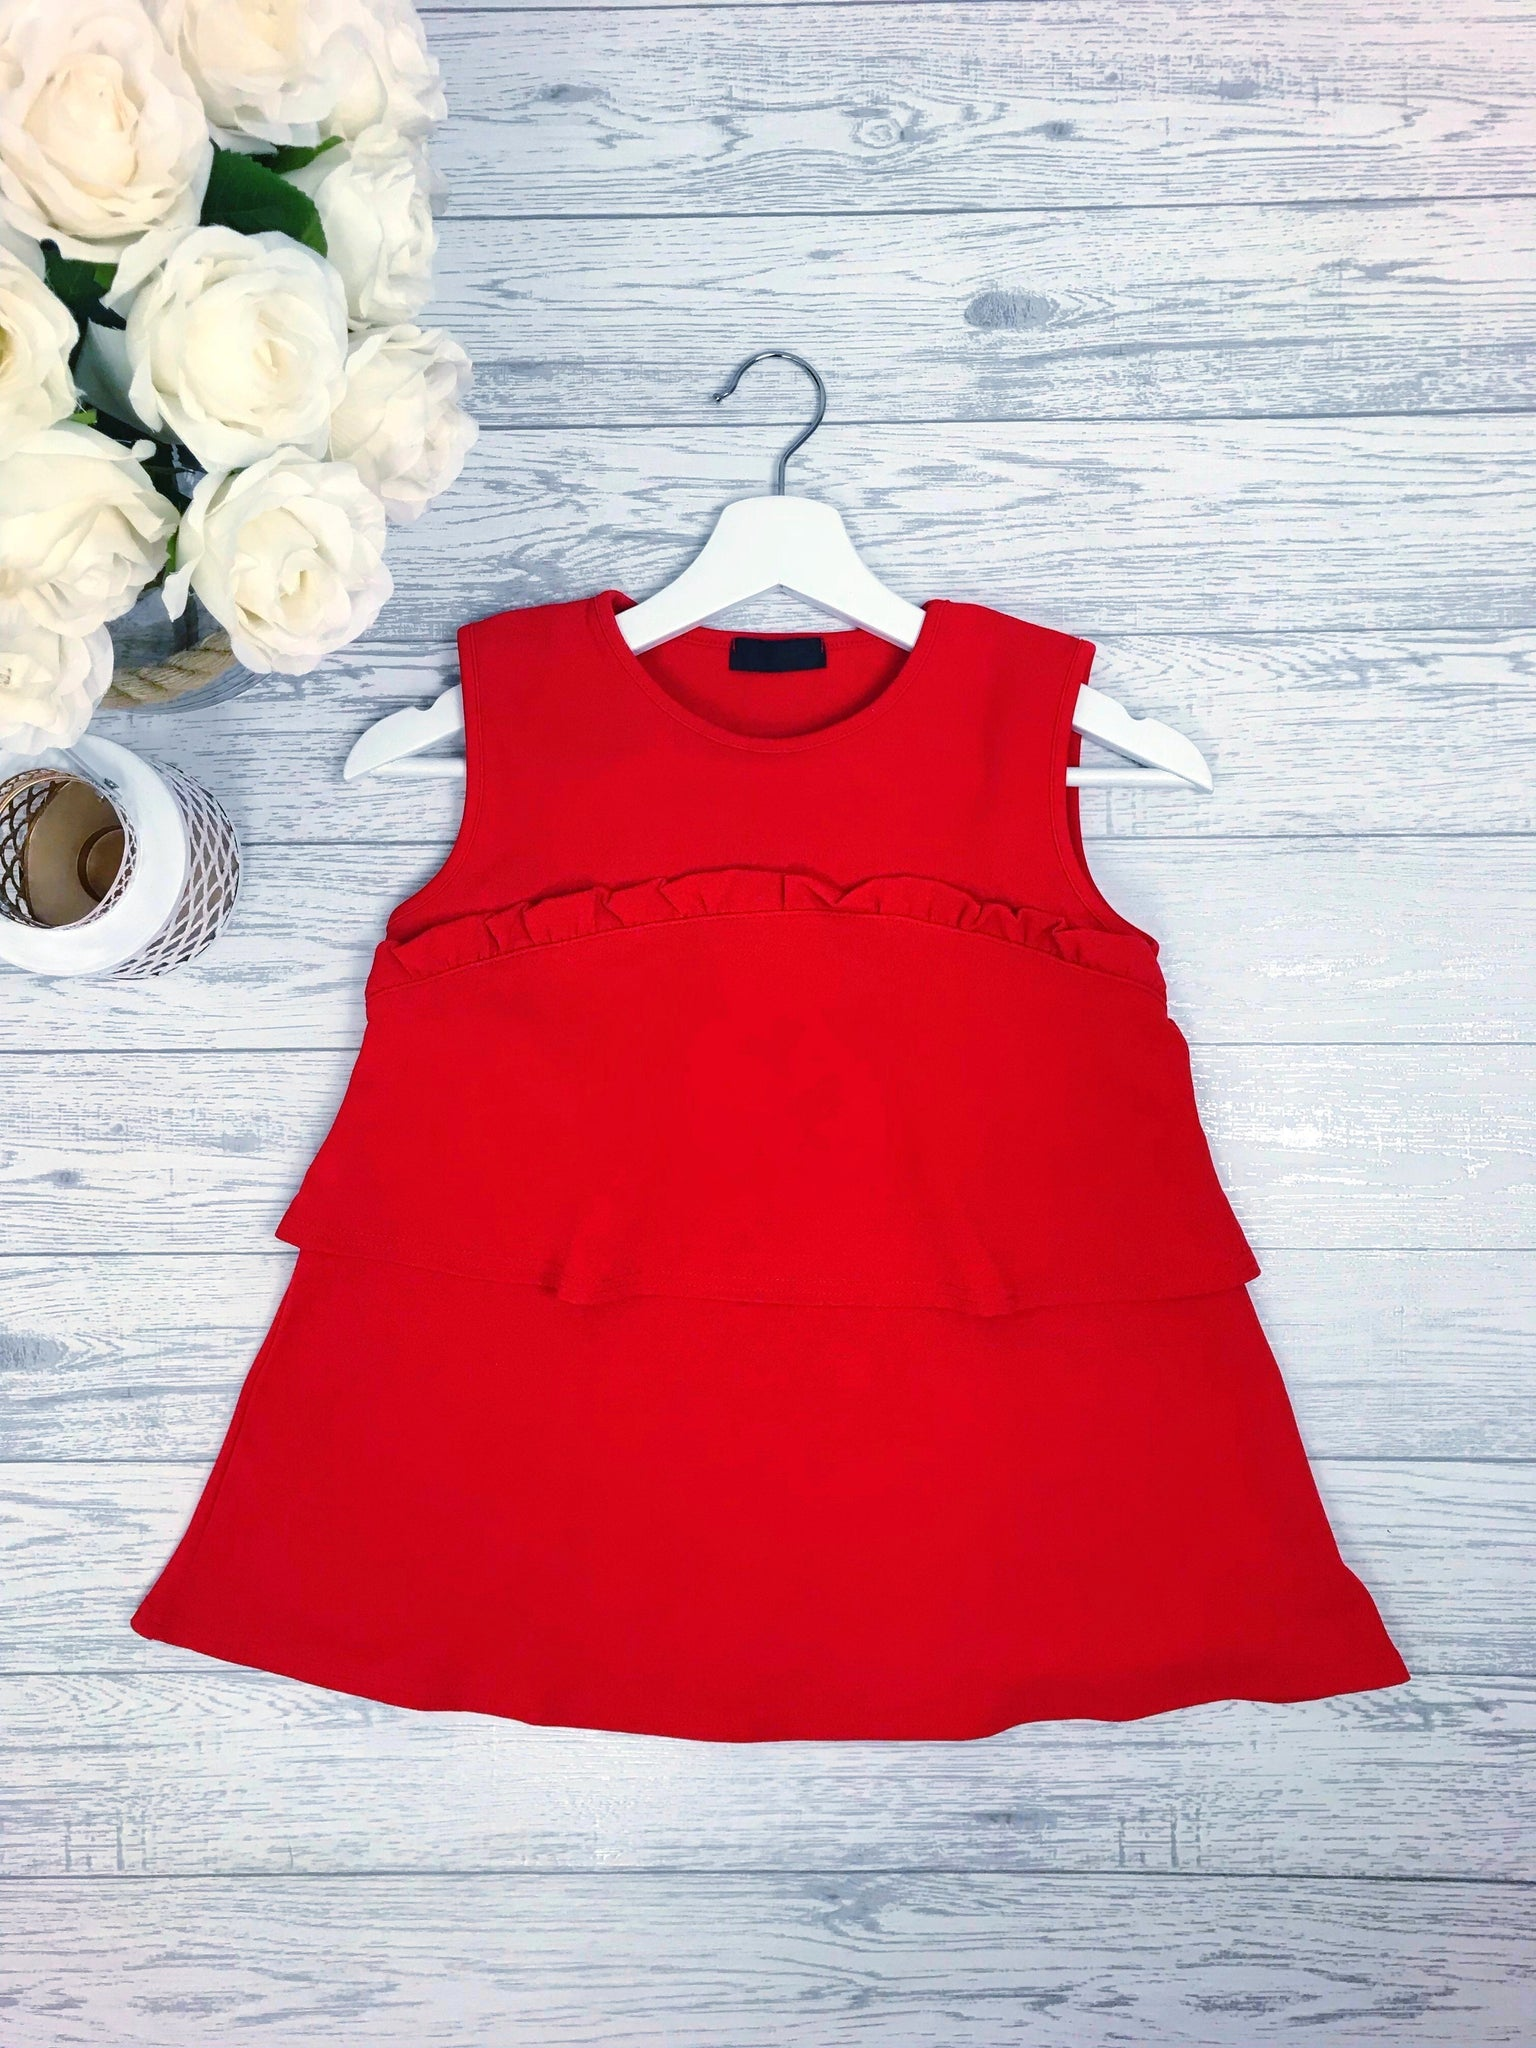 Women's Red Frill Top Going Out Party Top | Clothing Boutique